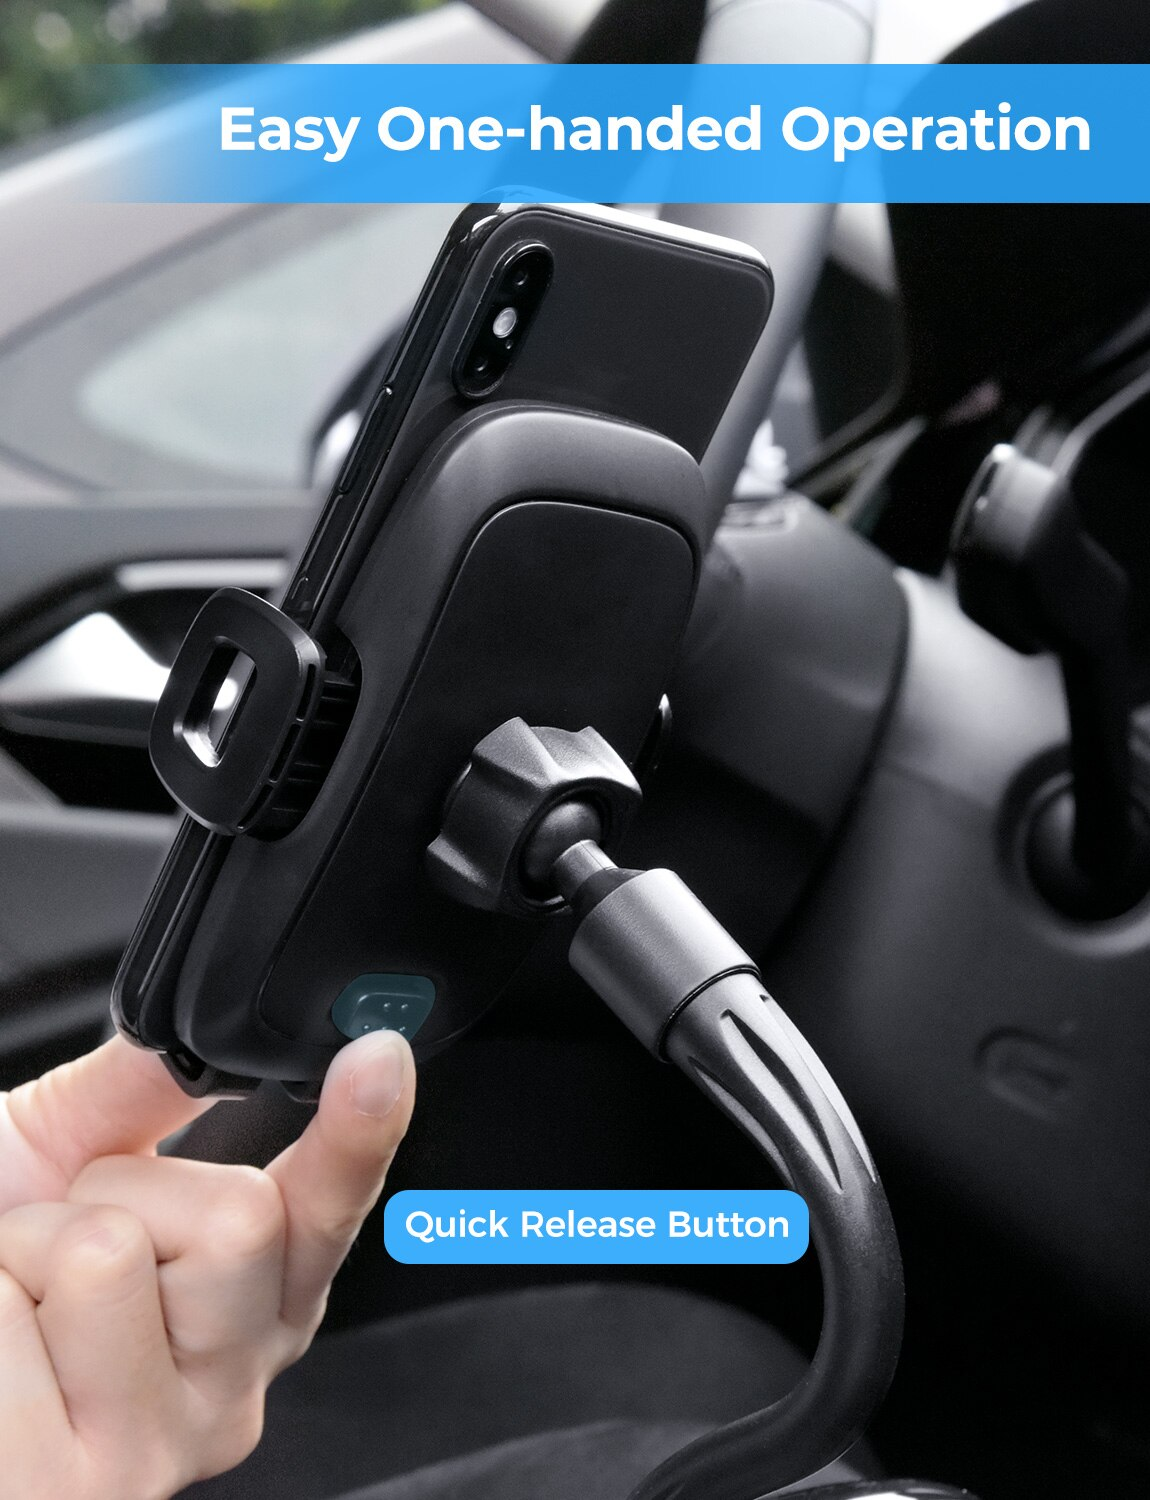 Hadb1d706f4944b9d8161cd9a1c37f918c - MPOW CA136 Cup Phone Holder for Car One-Hand Operation Phone Cradle Mount Flexible Long Arm Adjustable Clamp for iPhone Galaxy